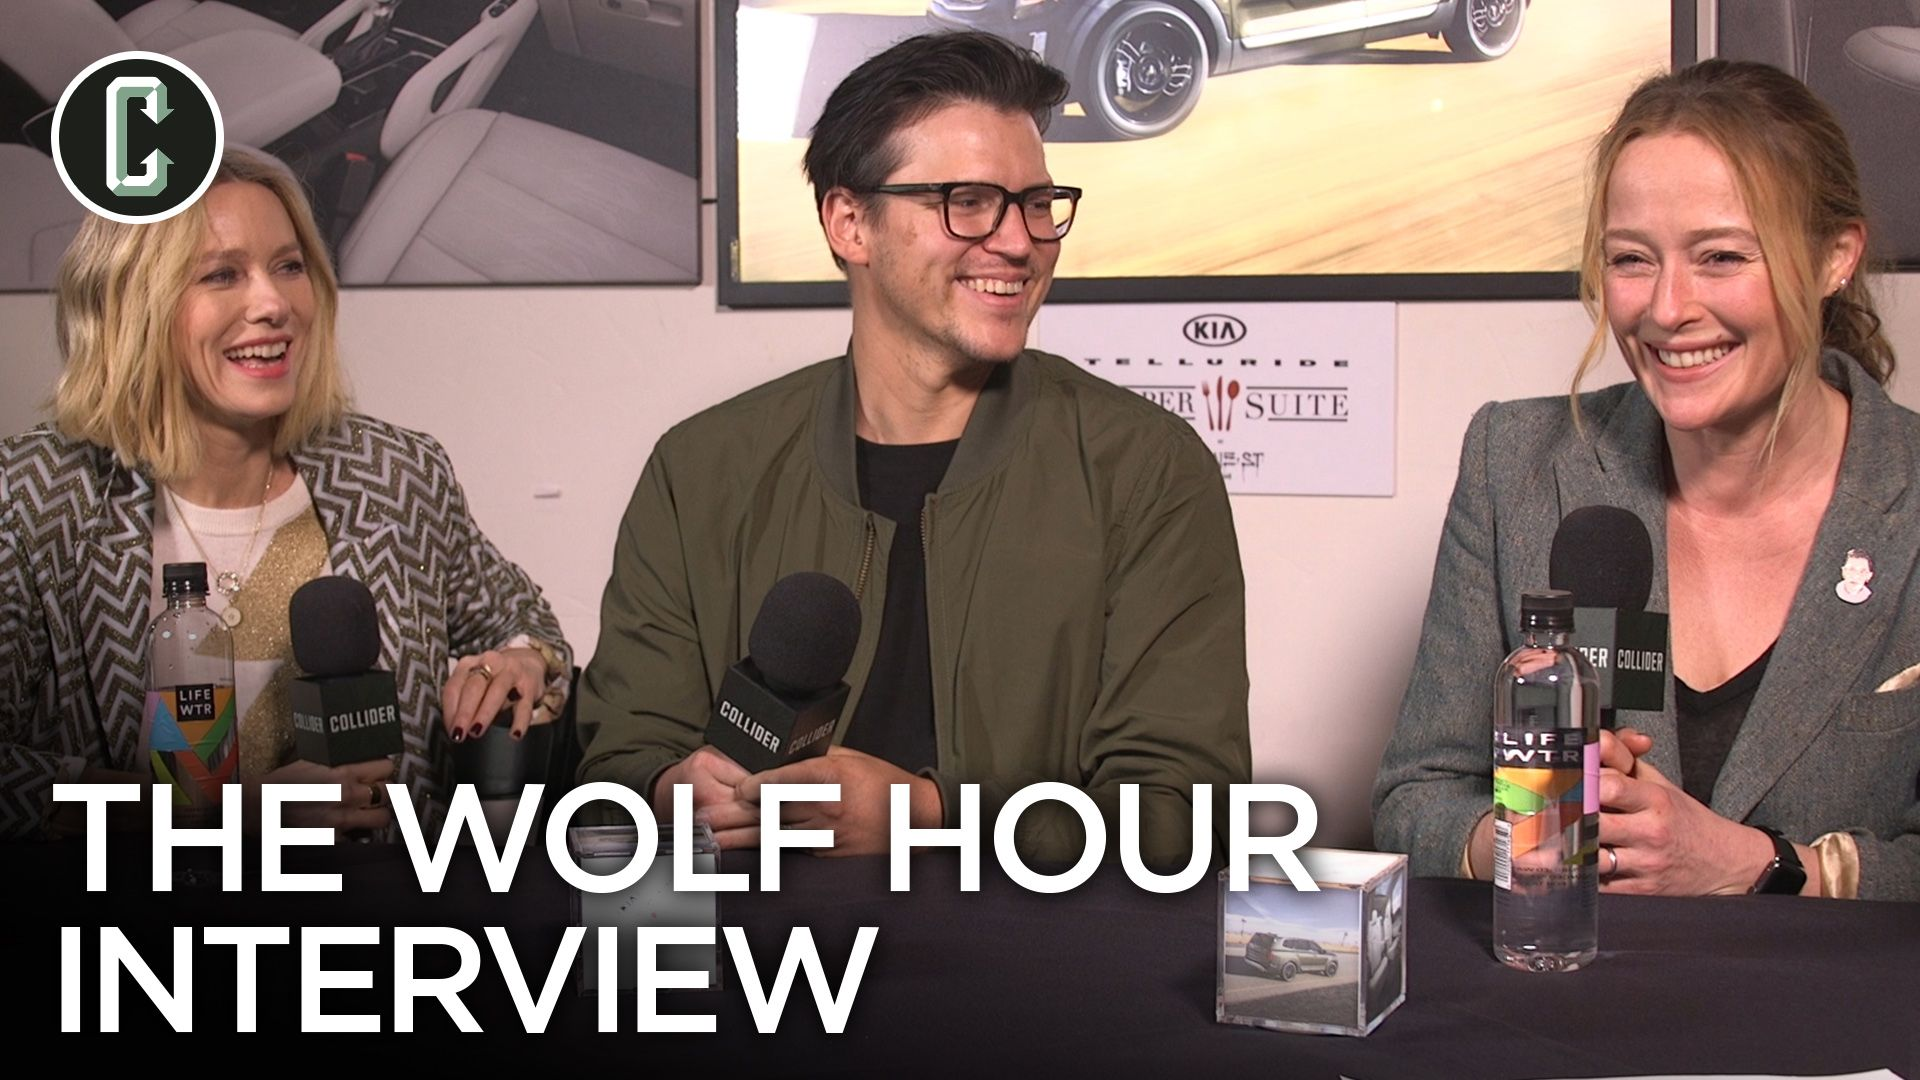 Naomi Watts on 'The Wolf Hour' & What Drew Her to the 'Game of Thrones' Prequel